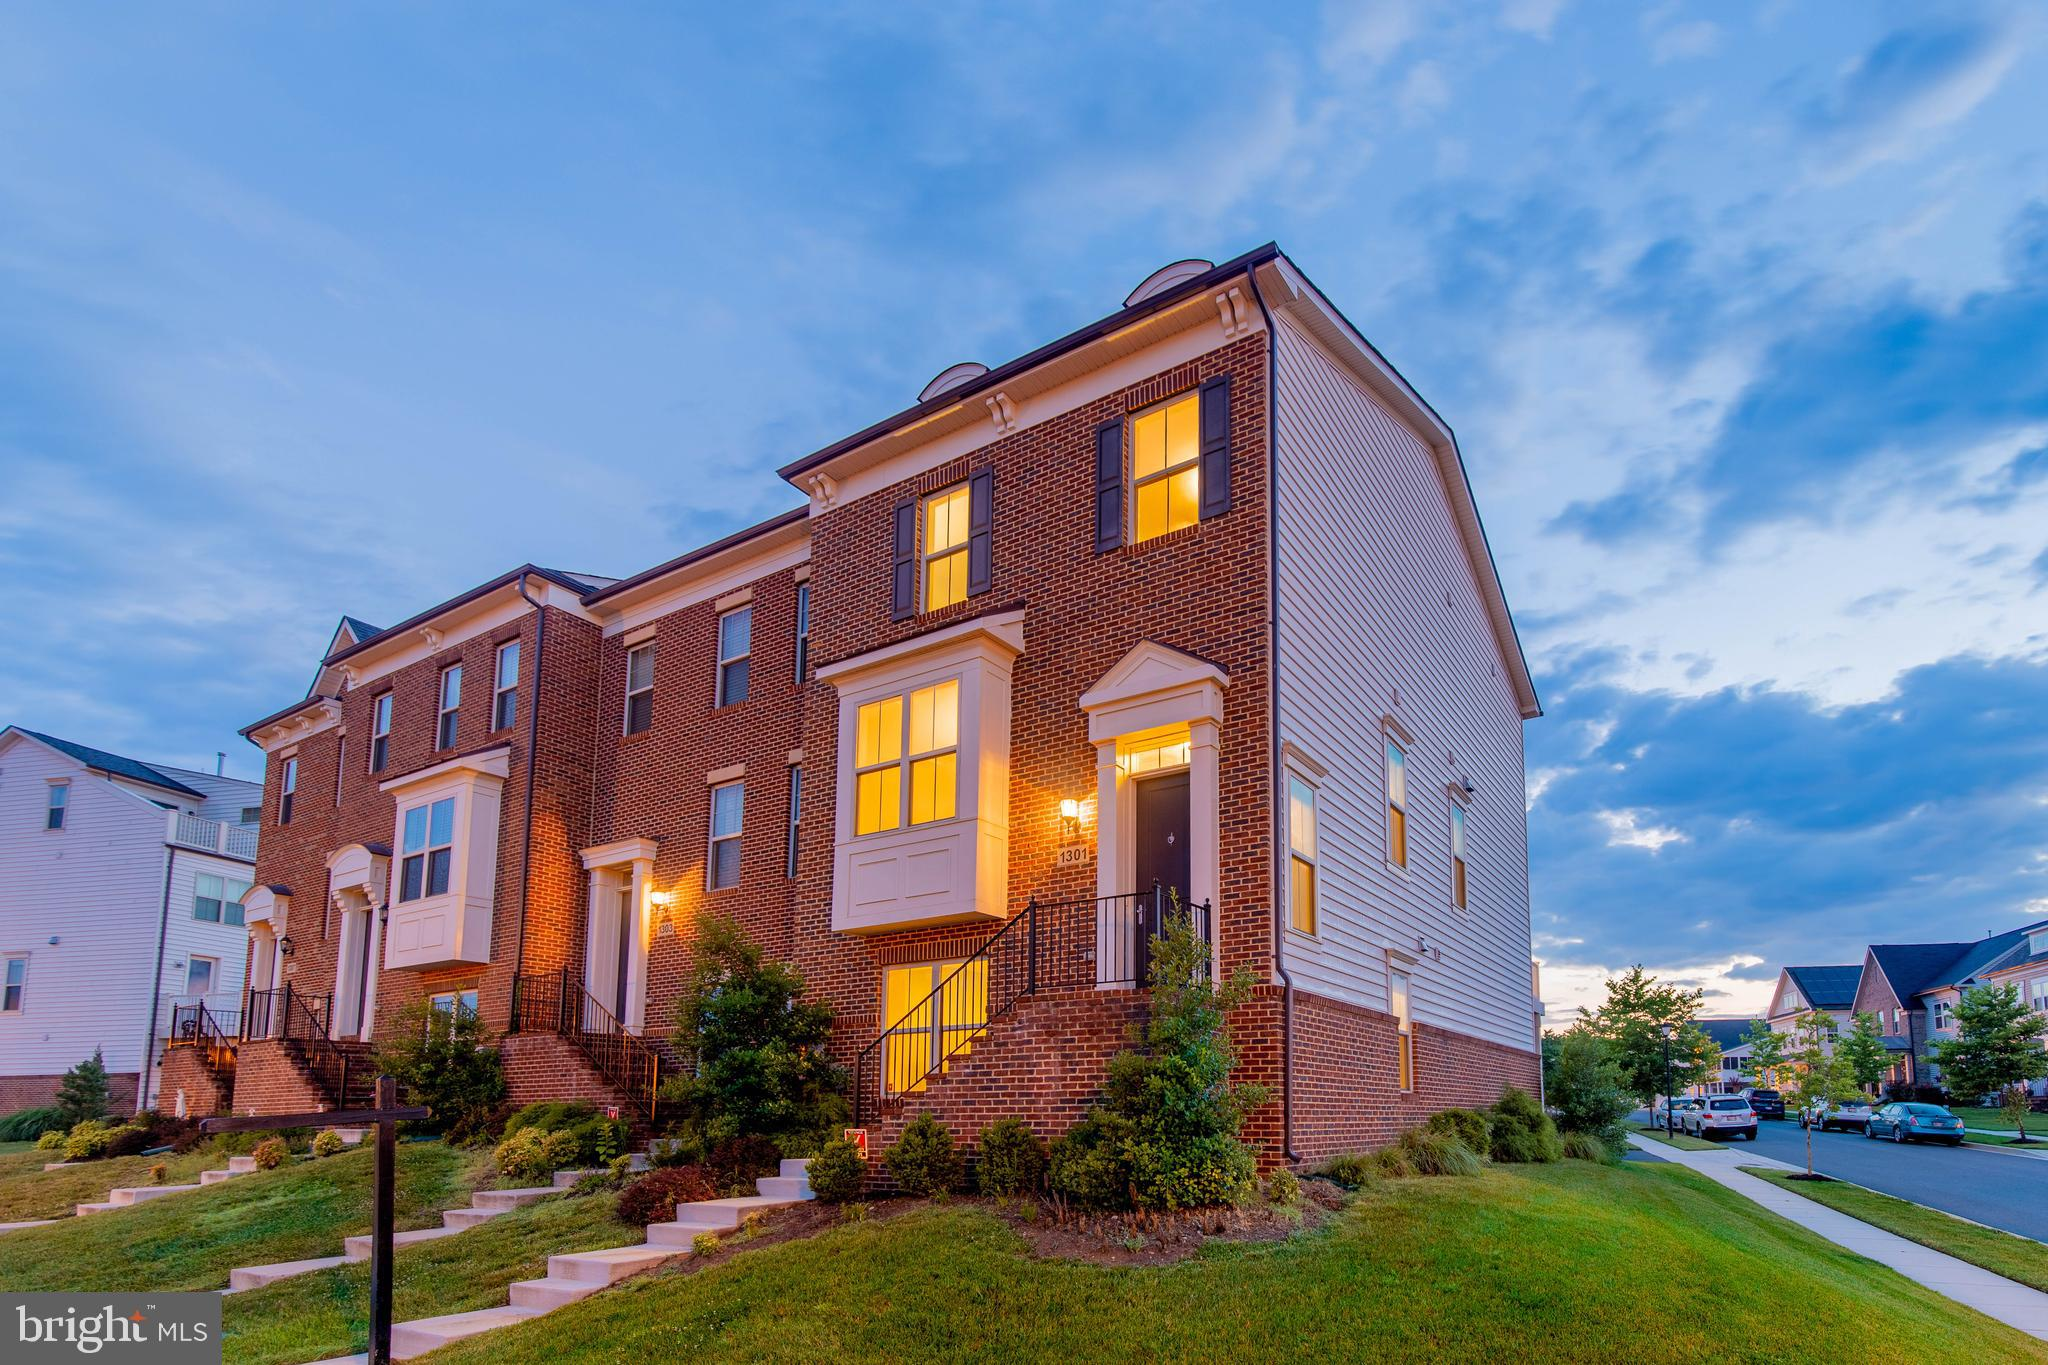 1301 Autumn Brook Ave, Silver Spring, MD, 20906